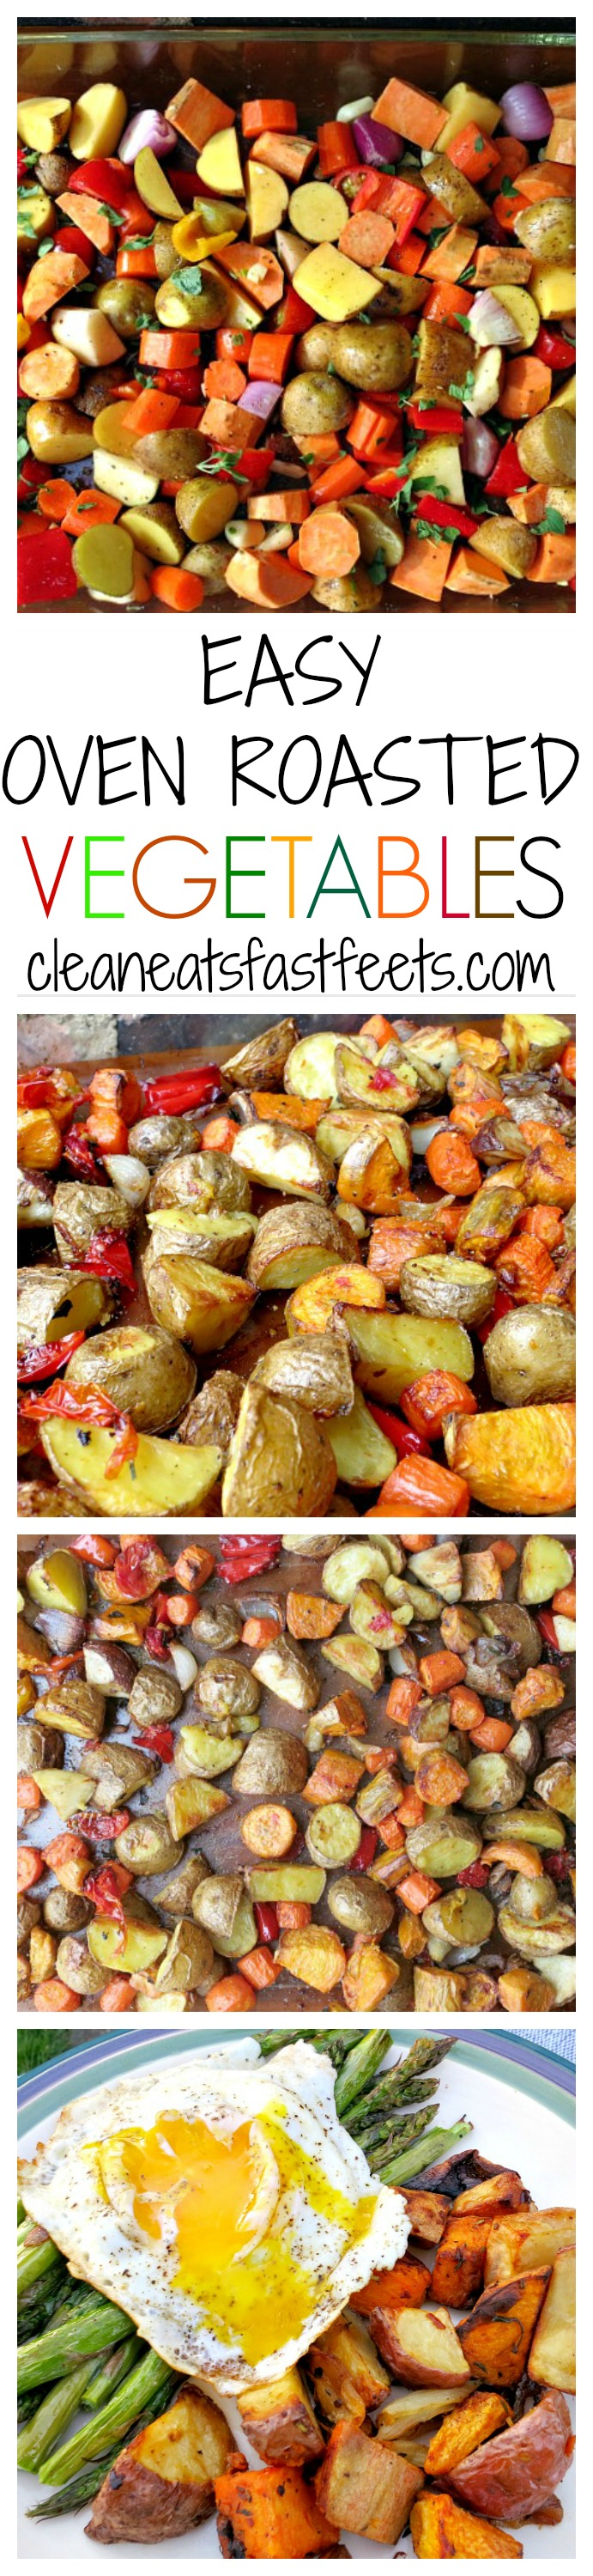 Recipe: Easy Oven Roasted Vegetables - Clean Eats, Fast Feets